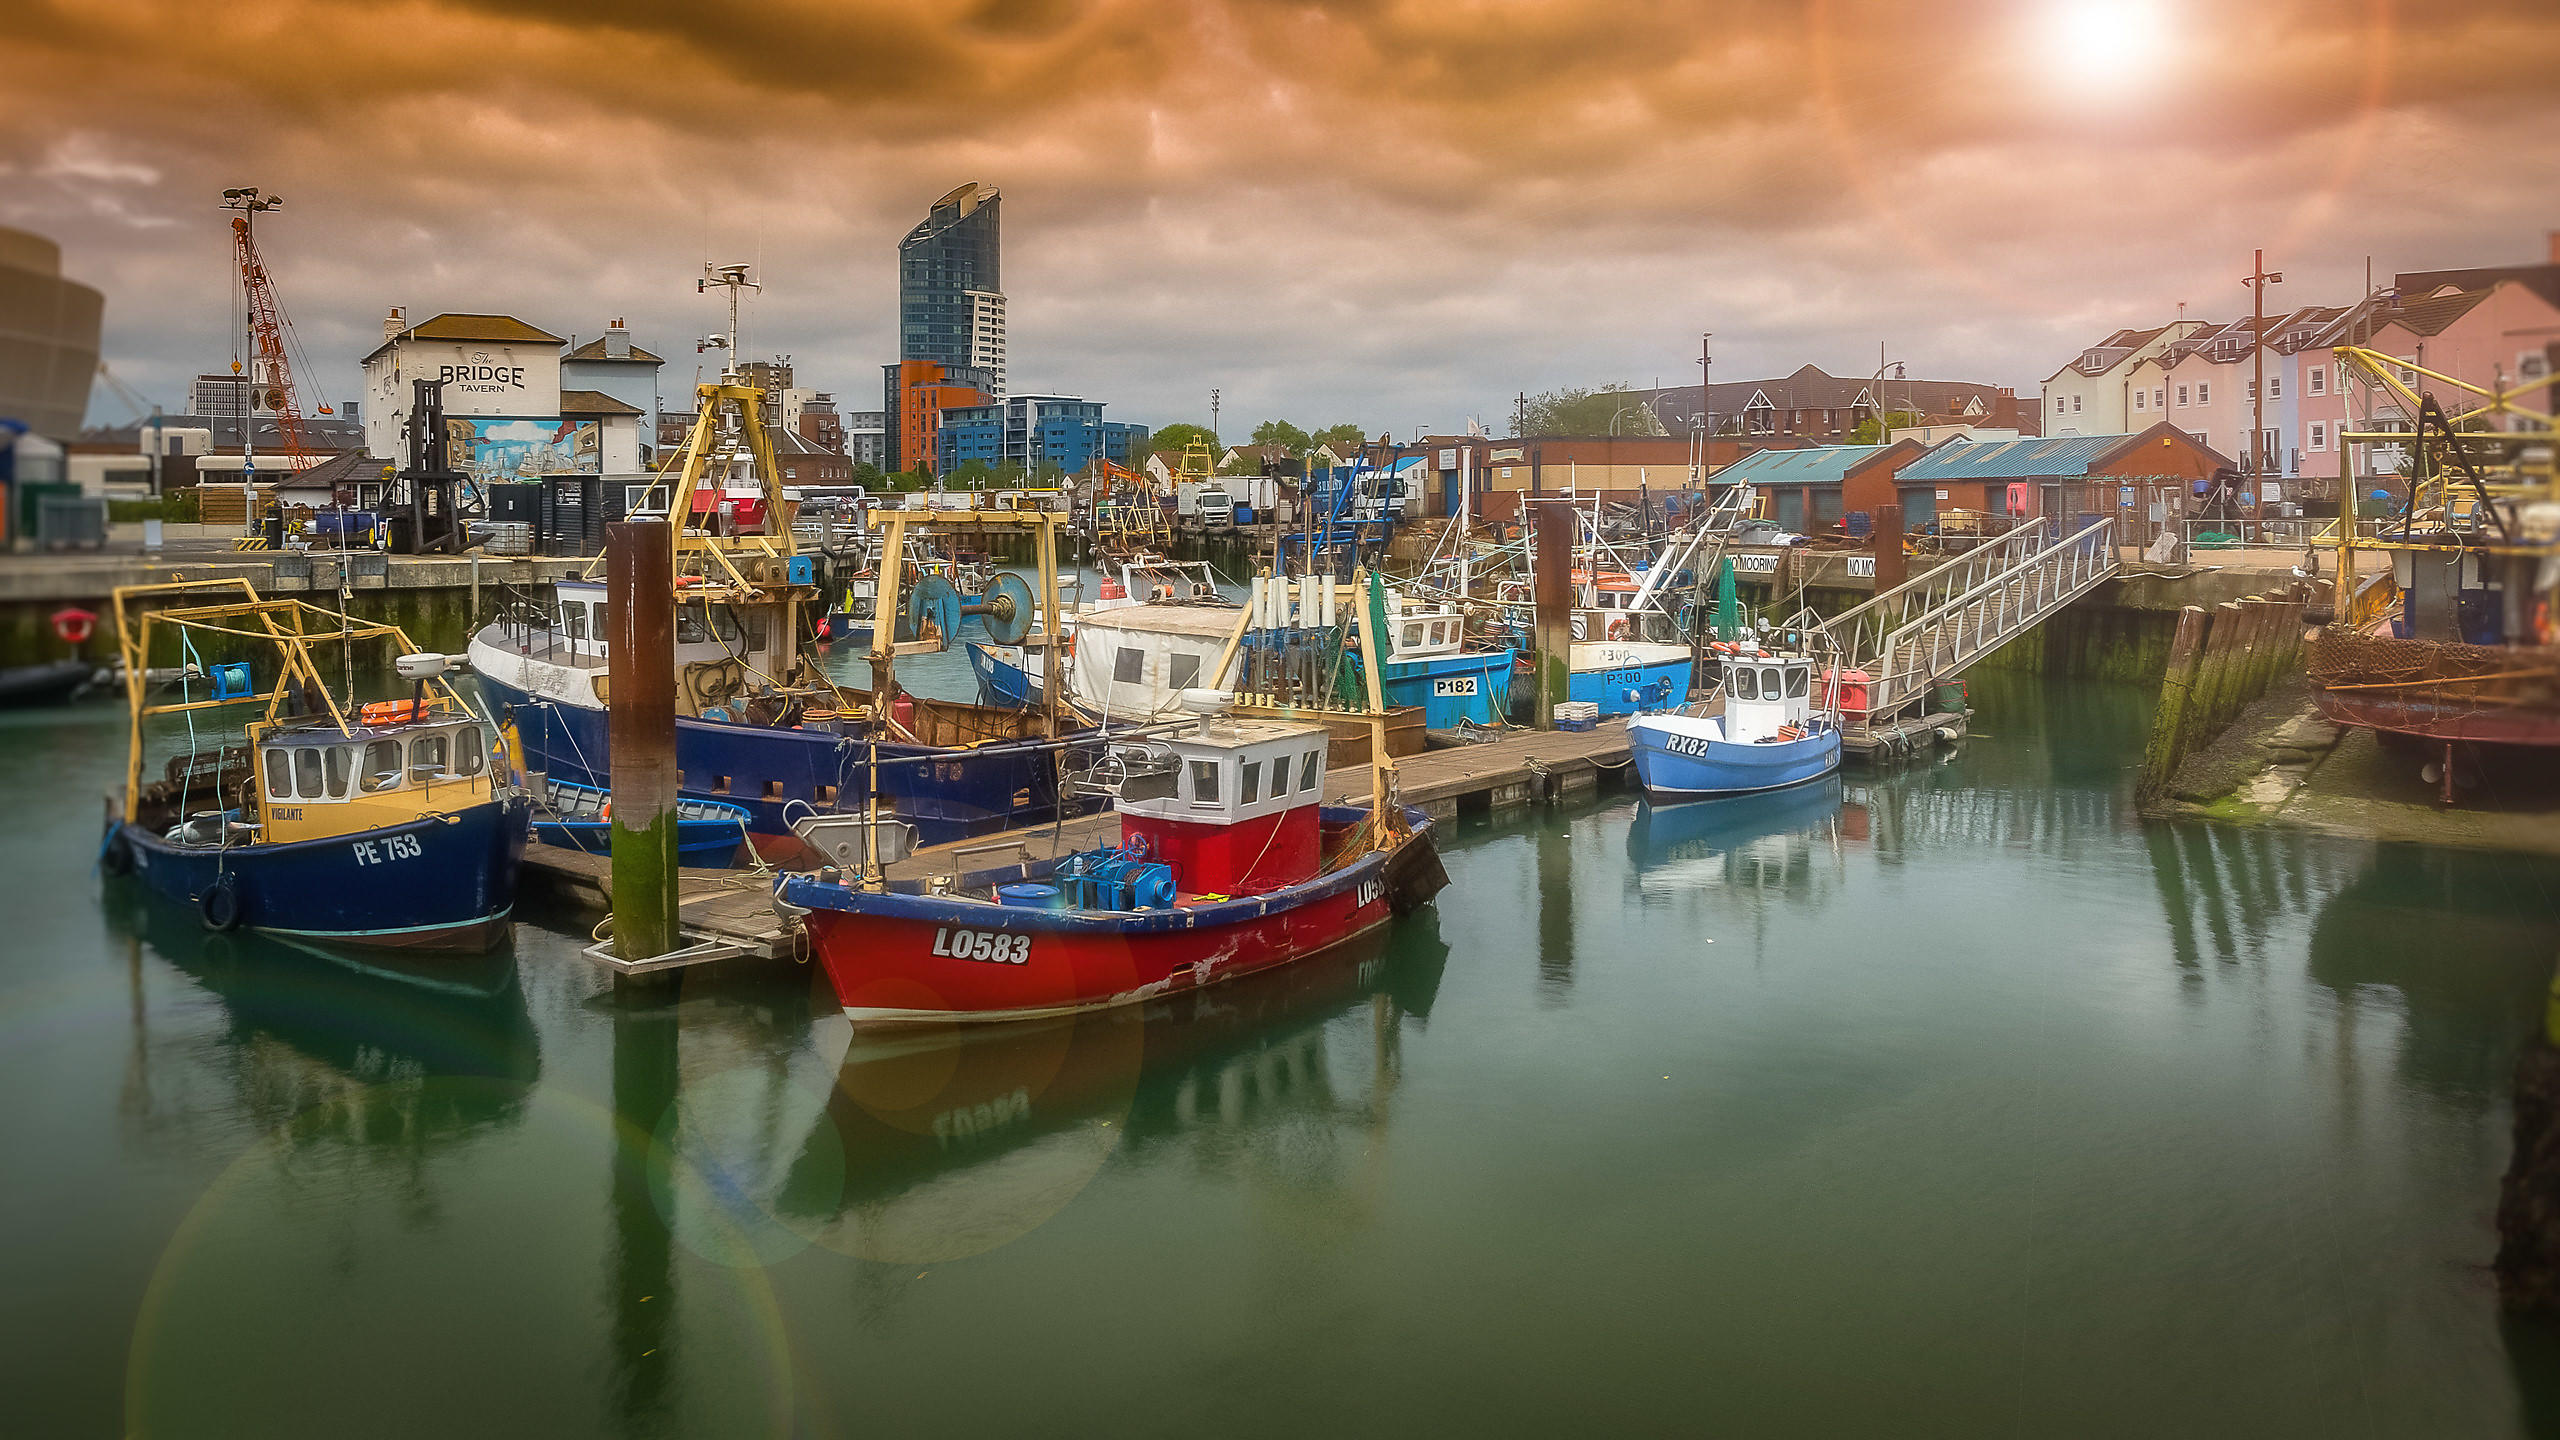 Fishing Boats in Camber Dock, Portsmouth - UK